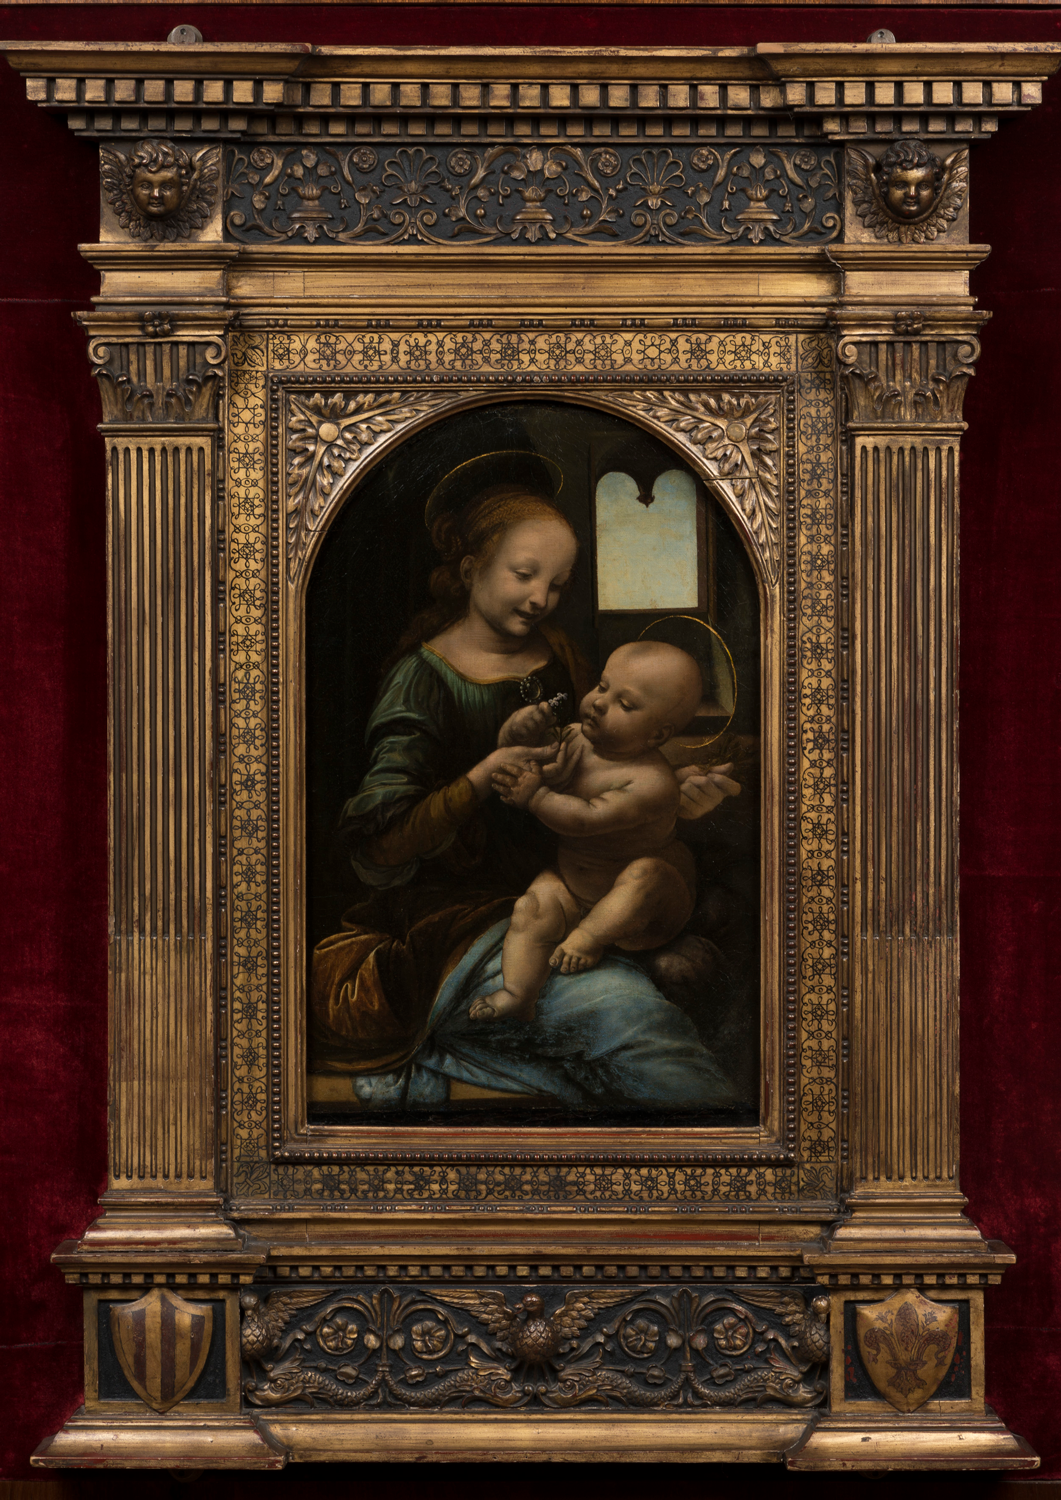 iGuzzini illuminates the Madonna Benois